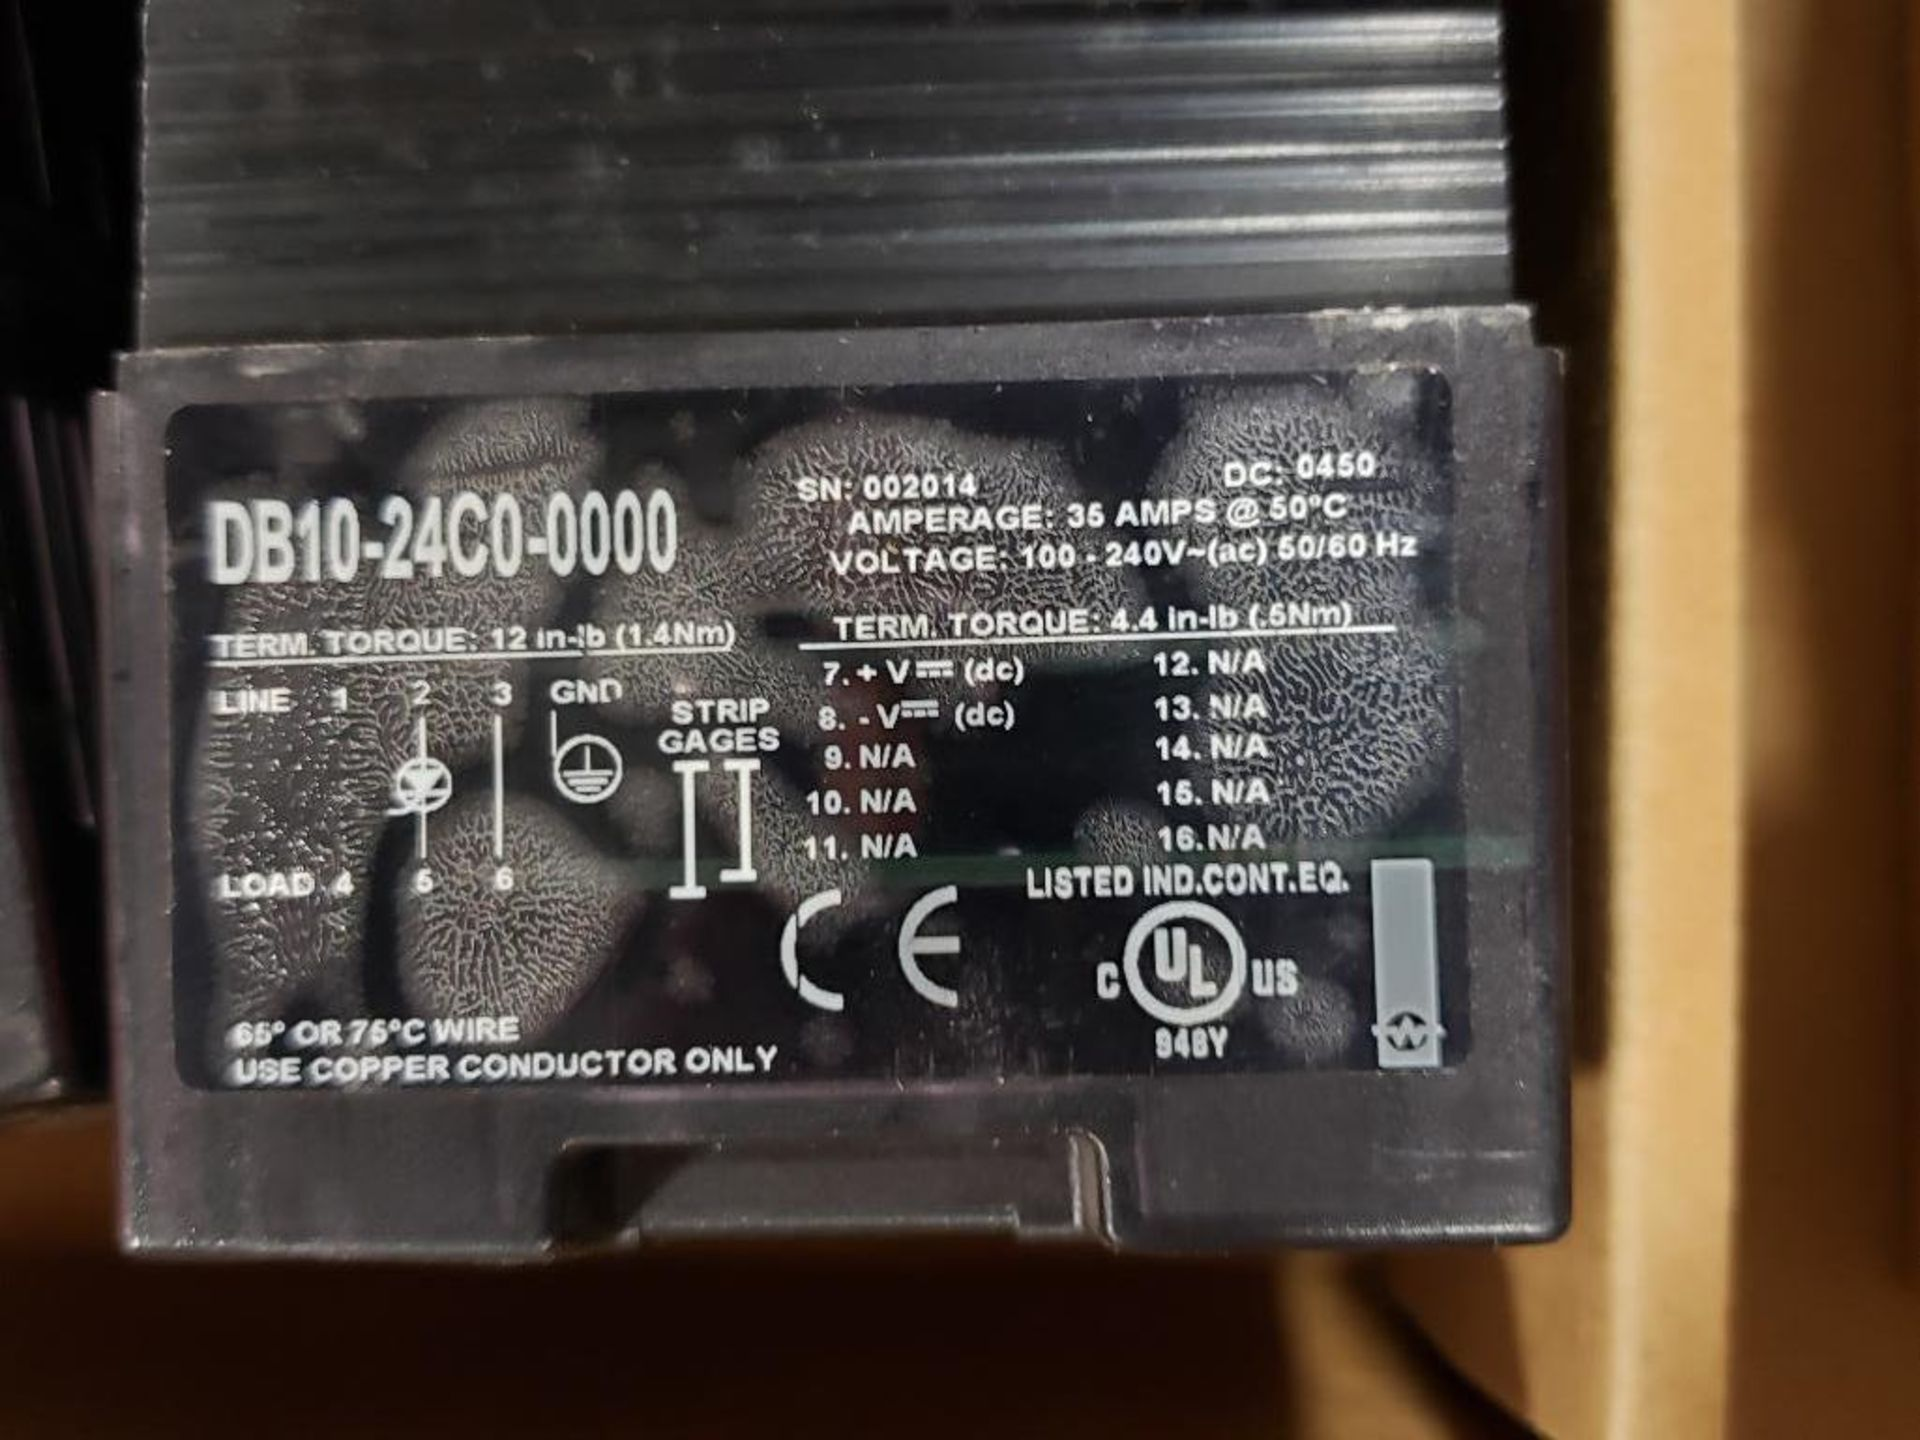 Qty 2 - Watlow DIN-A-Mite DB10-24C0-0000 power controller. - Image 4 of 5